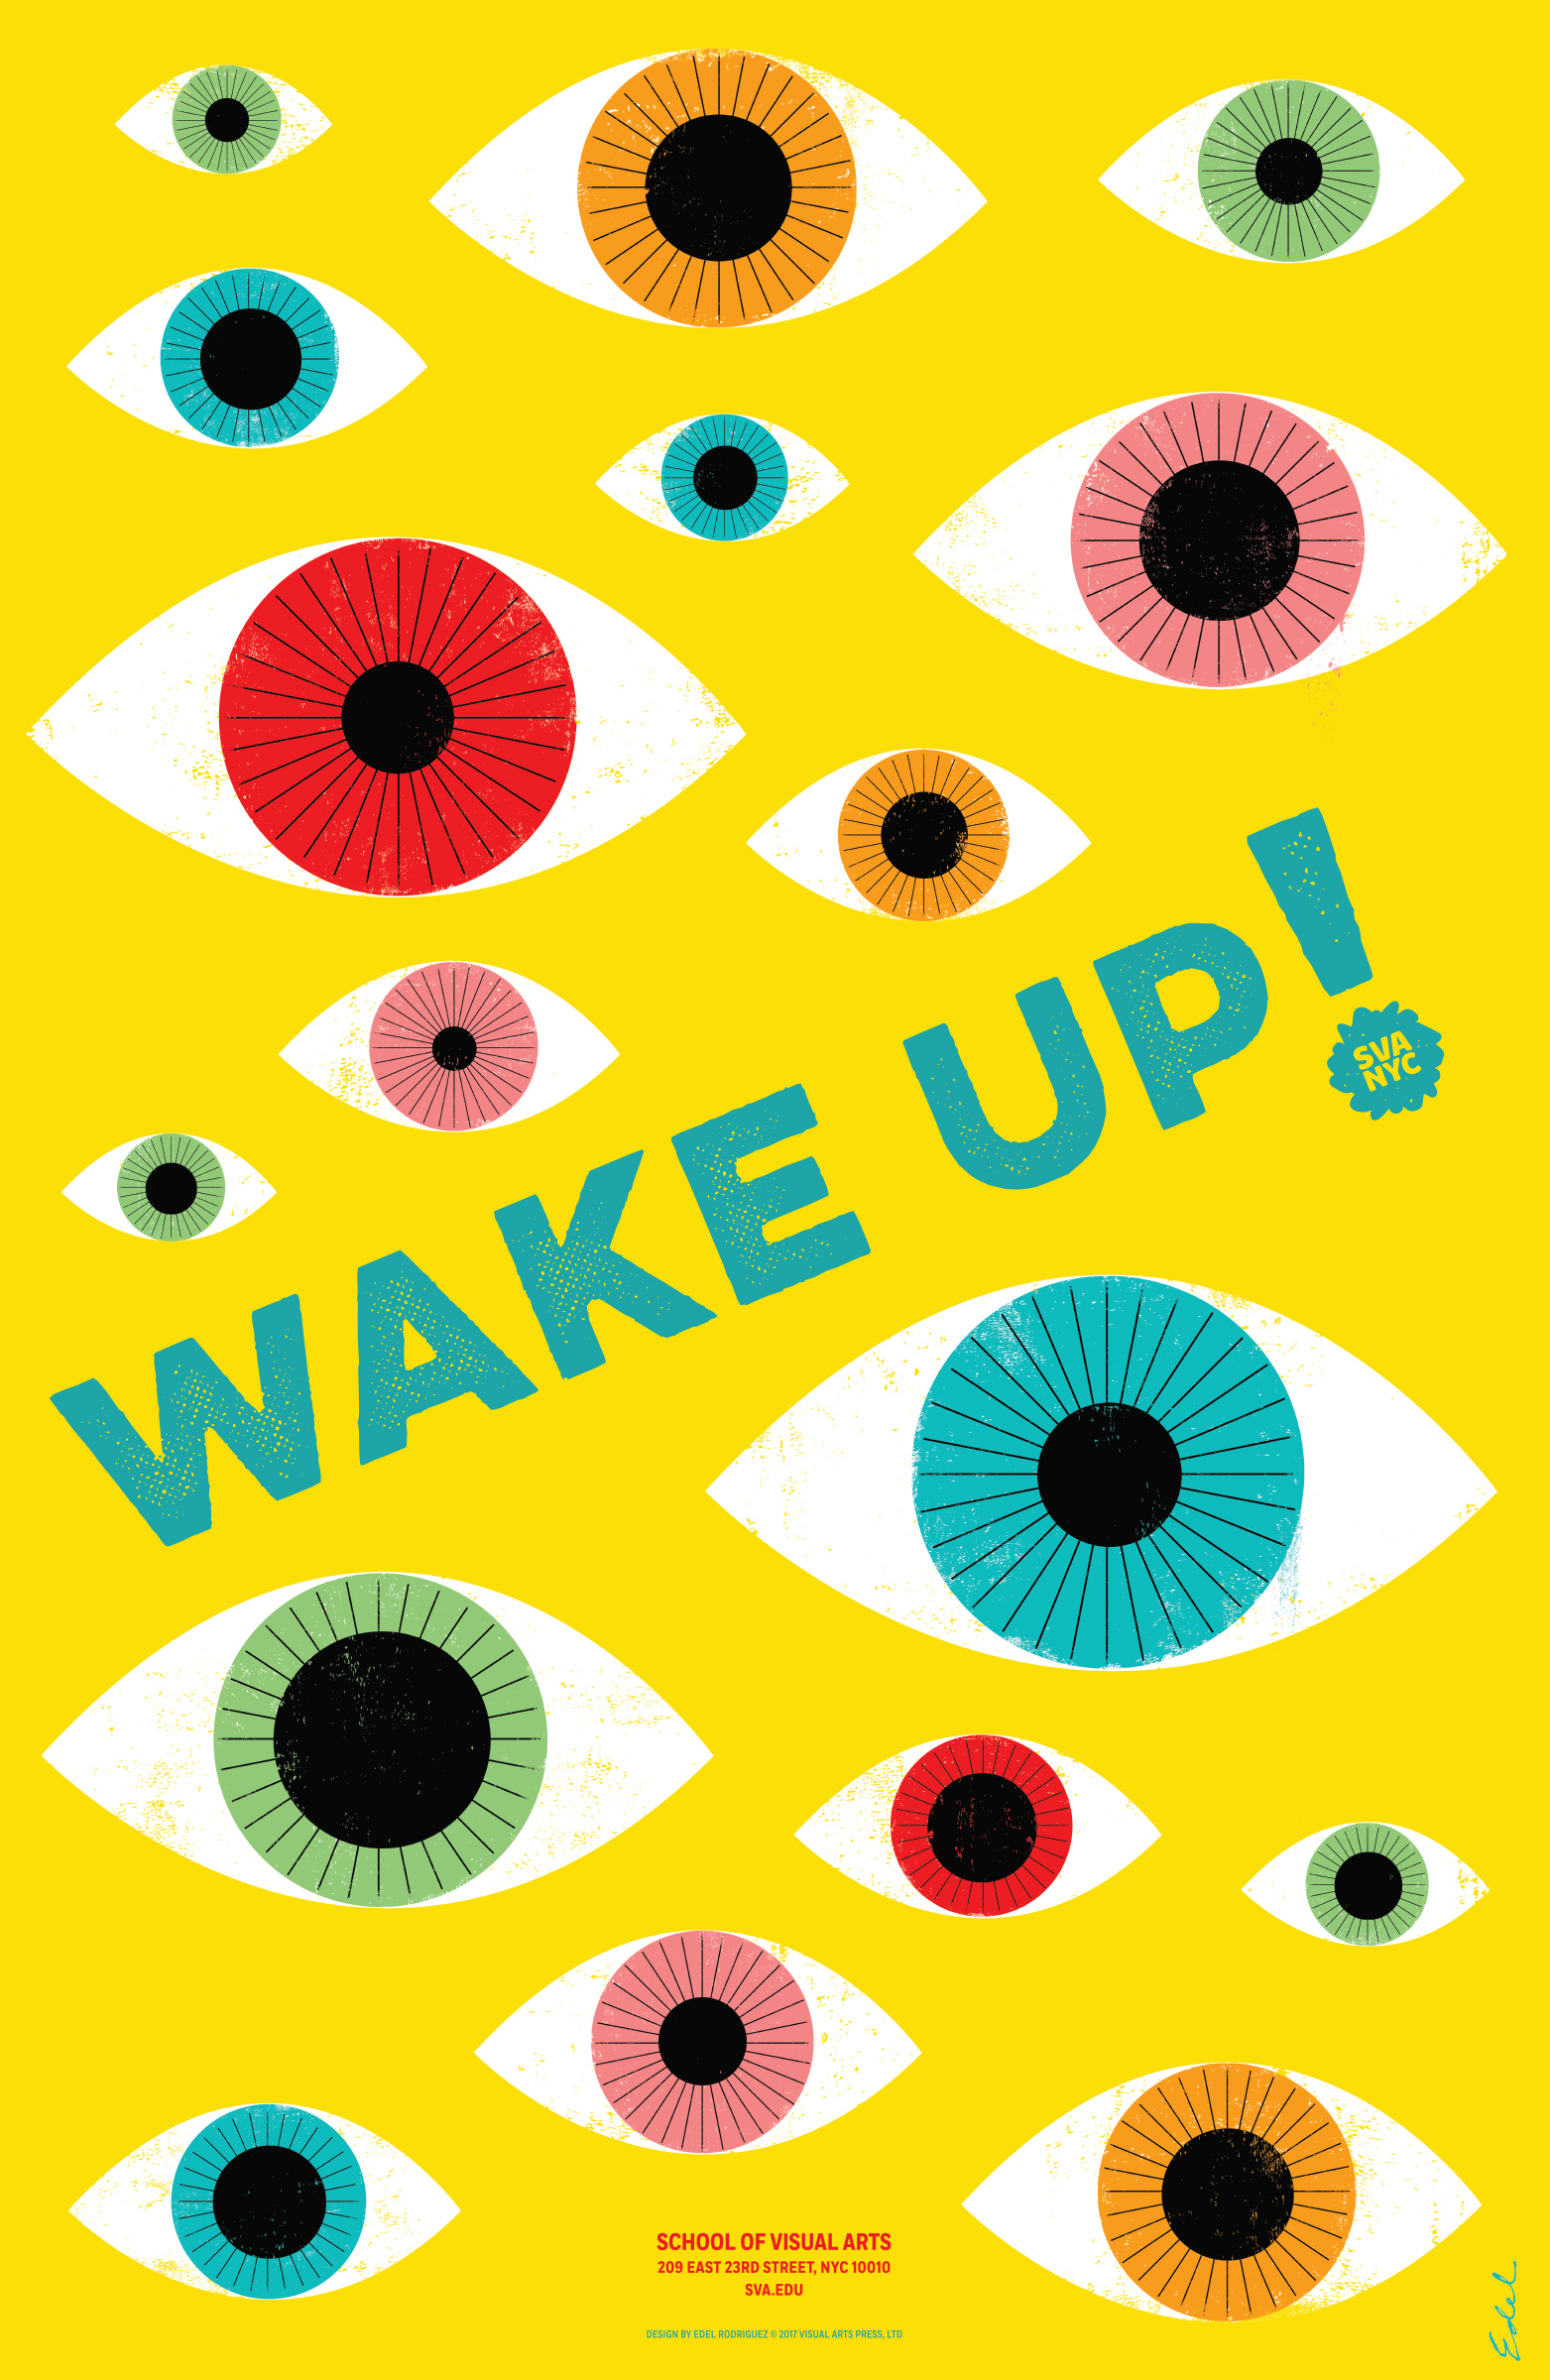 A poster for the School of Visual Arts. There are multiple eye ball drawing in different colors, blue, green, red, orange. In the center it says Wake Up.